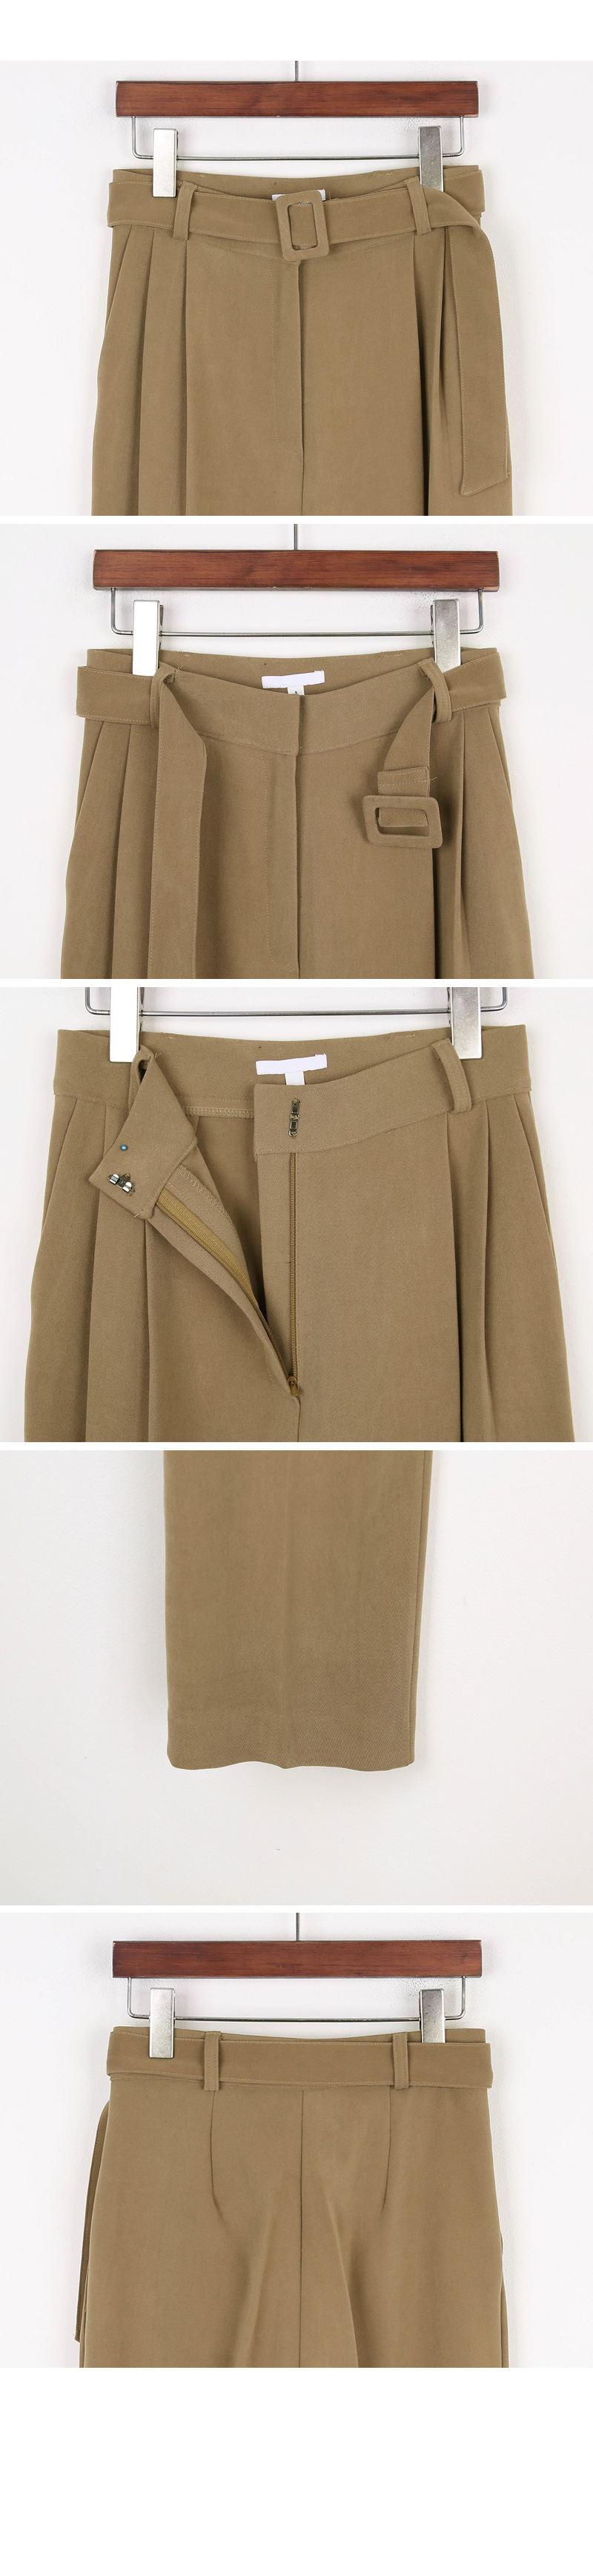 Worm Belt Slacks